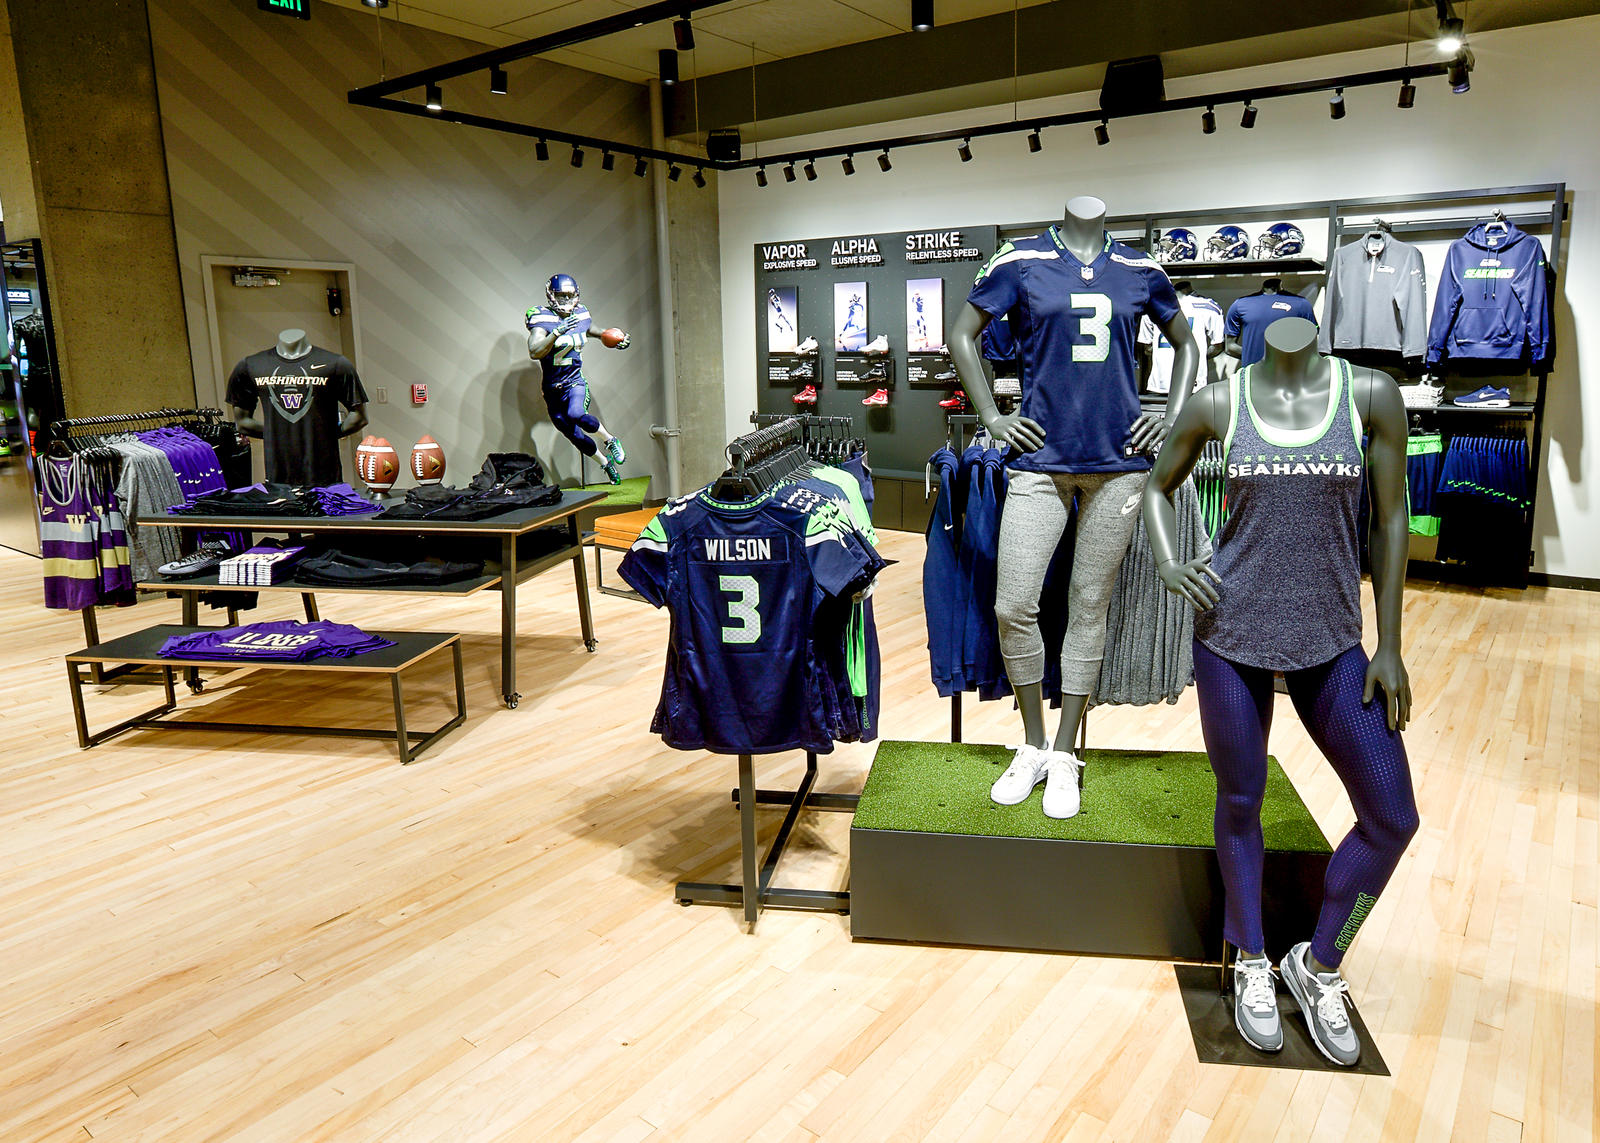 Nike seattlereopeningbeautyshots 7.29.15 12 rectangle 1600